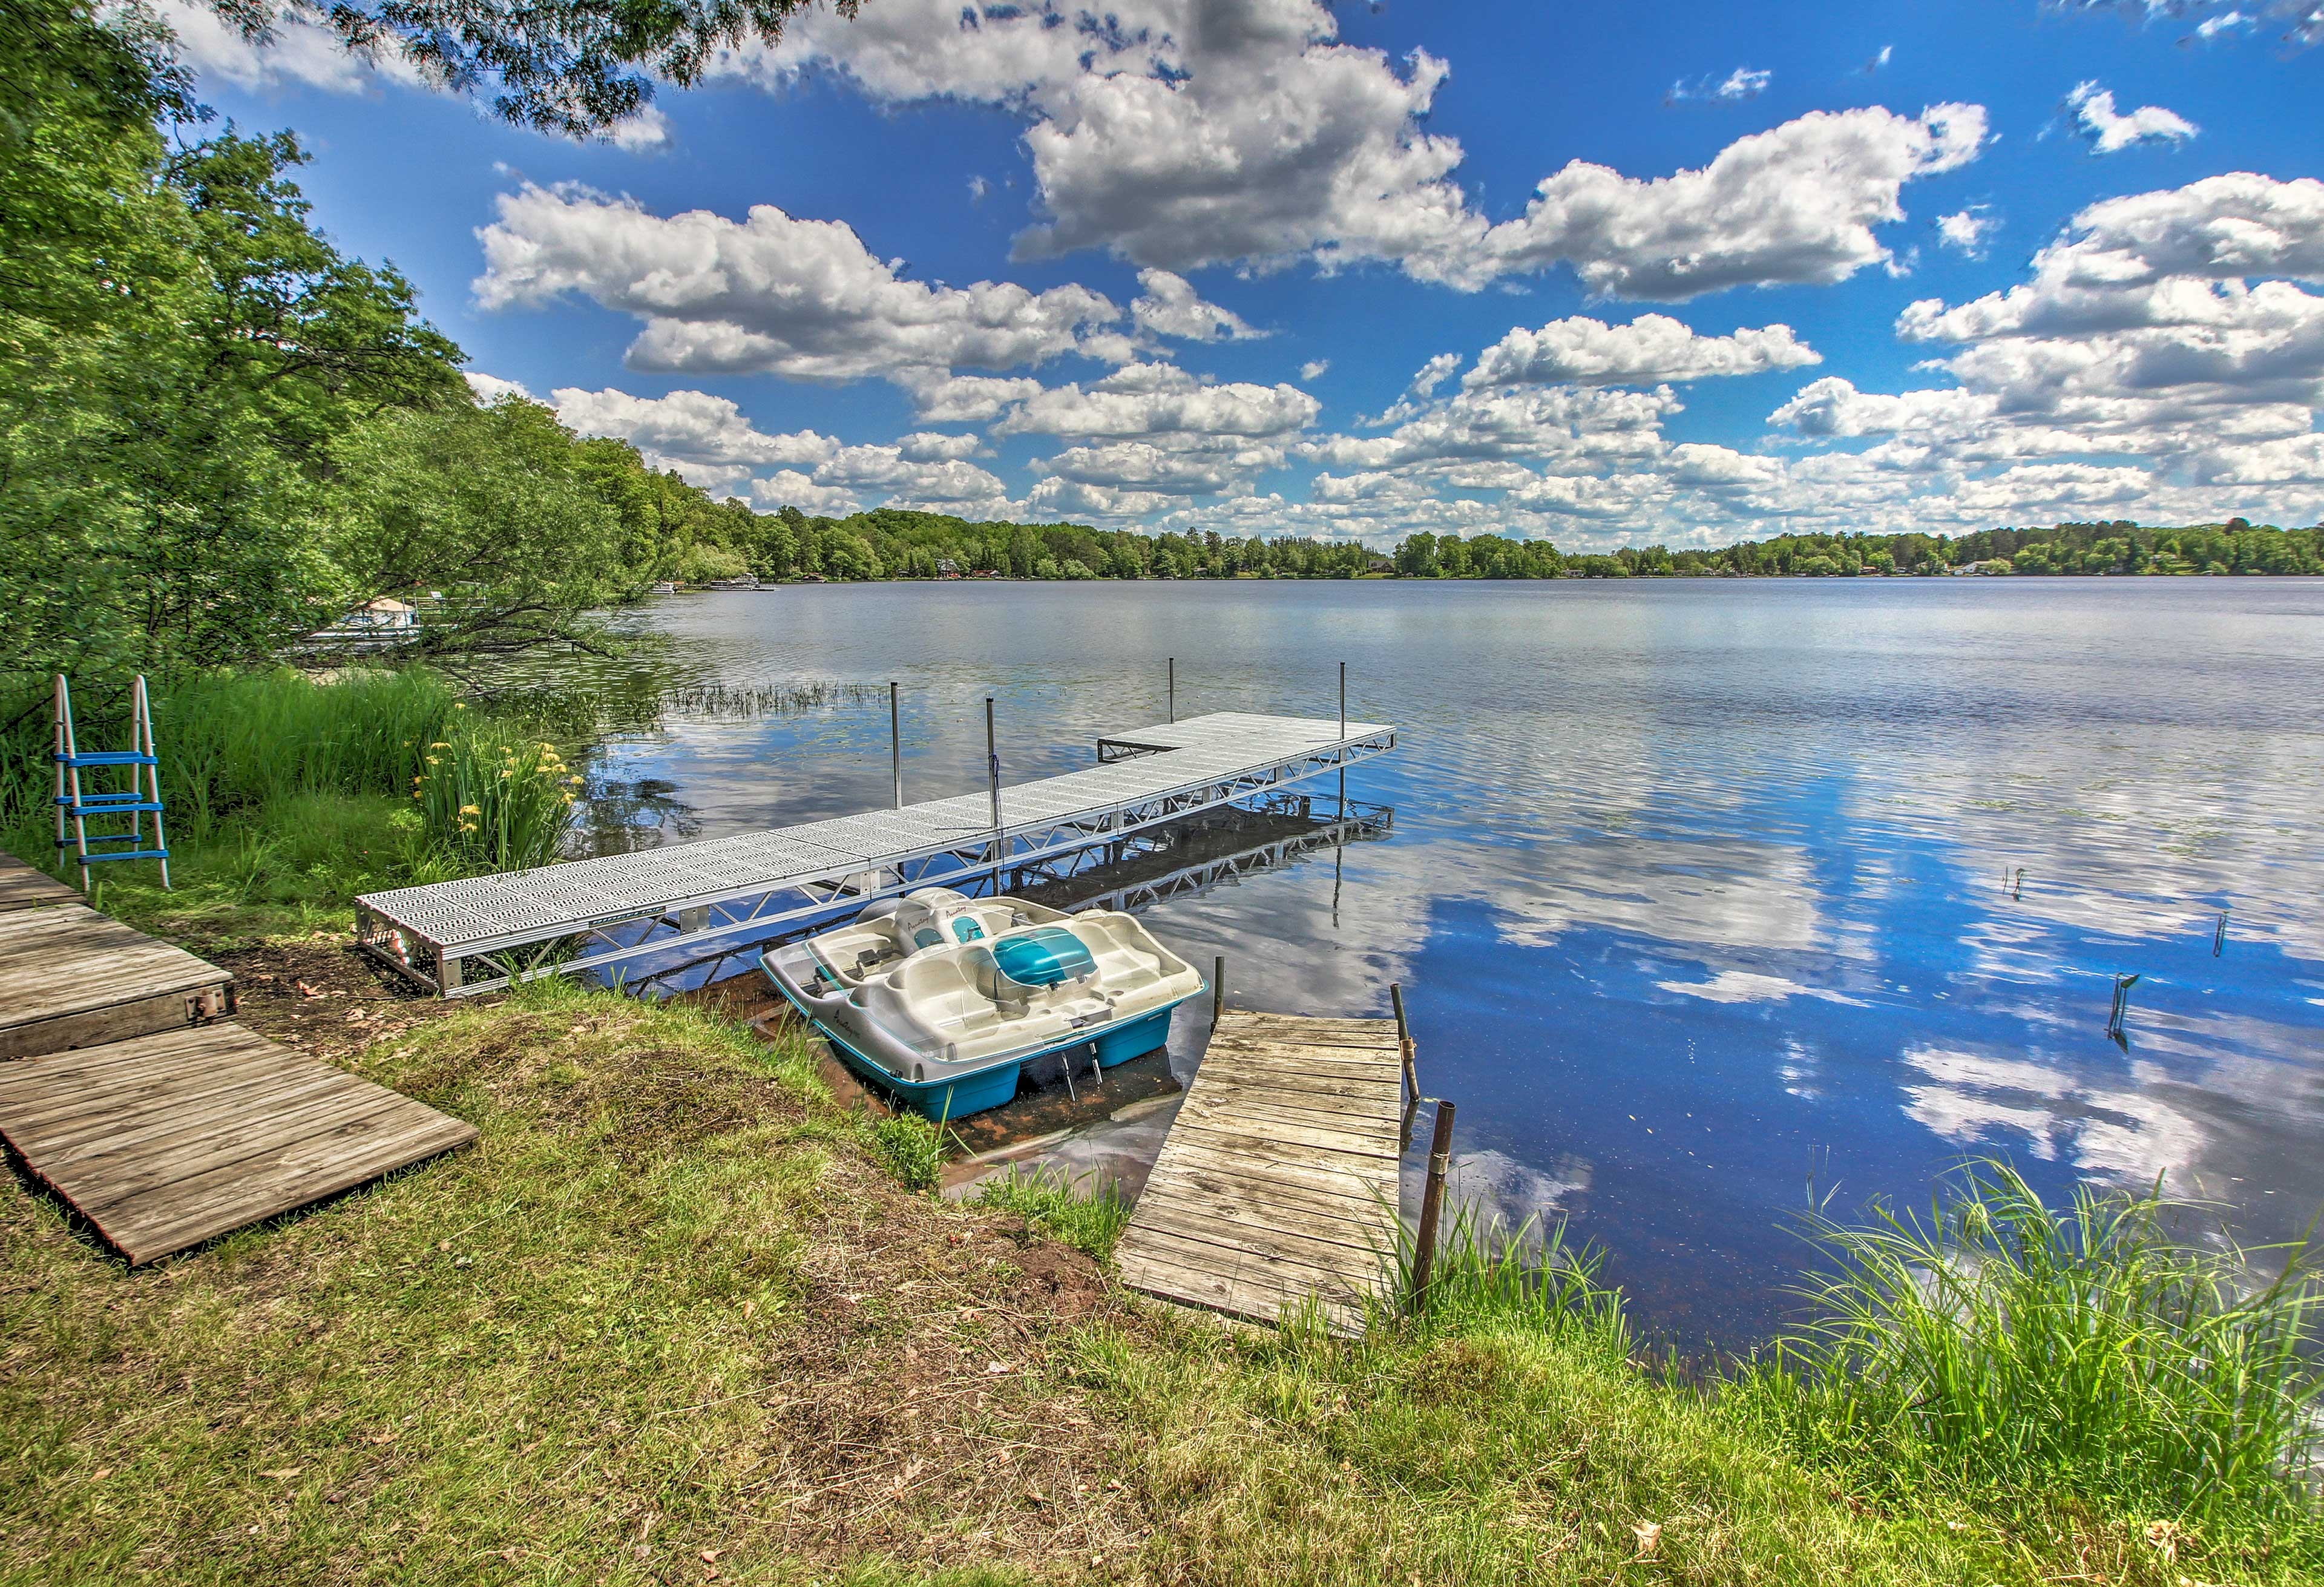 Spend afternoons boating, swimming & fishing on Dowling Lake.